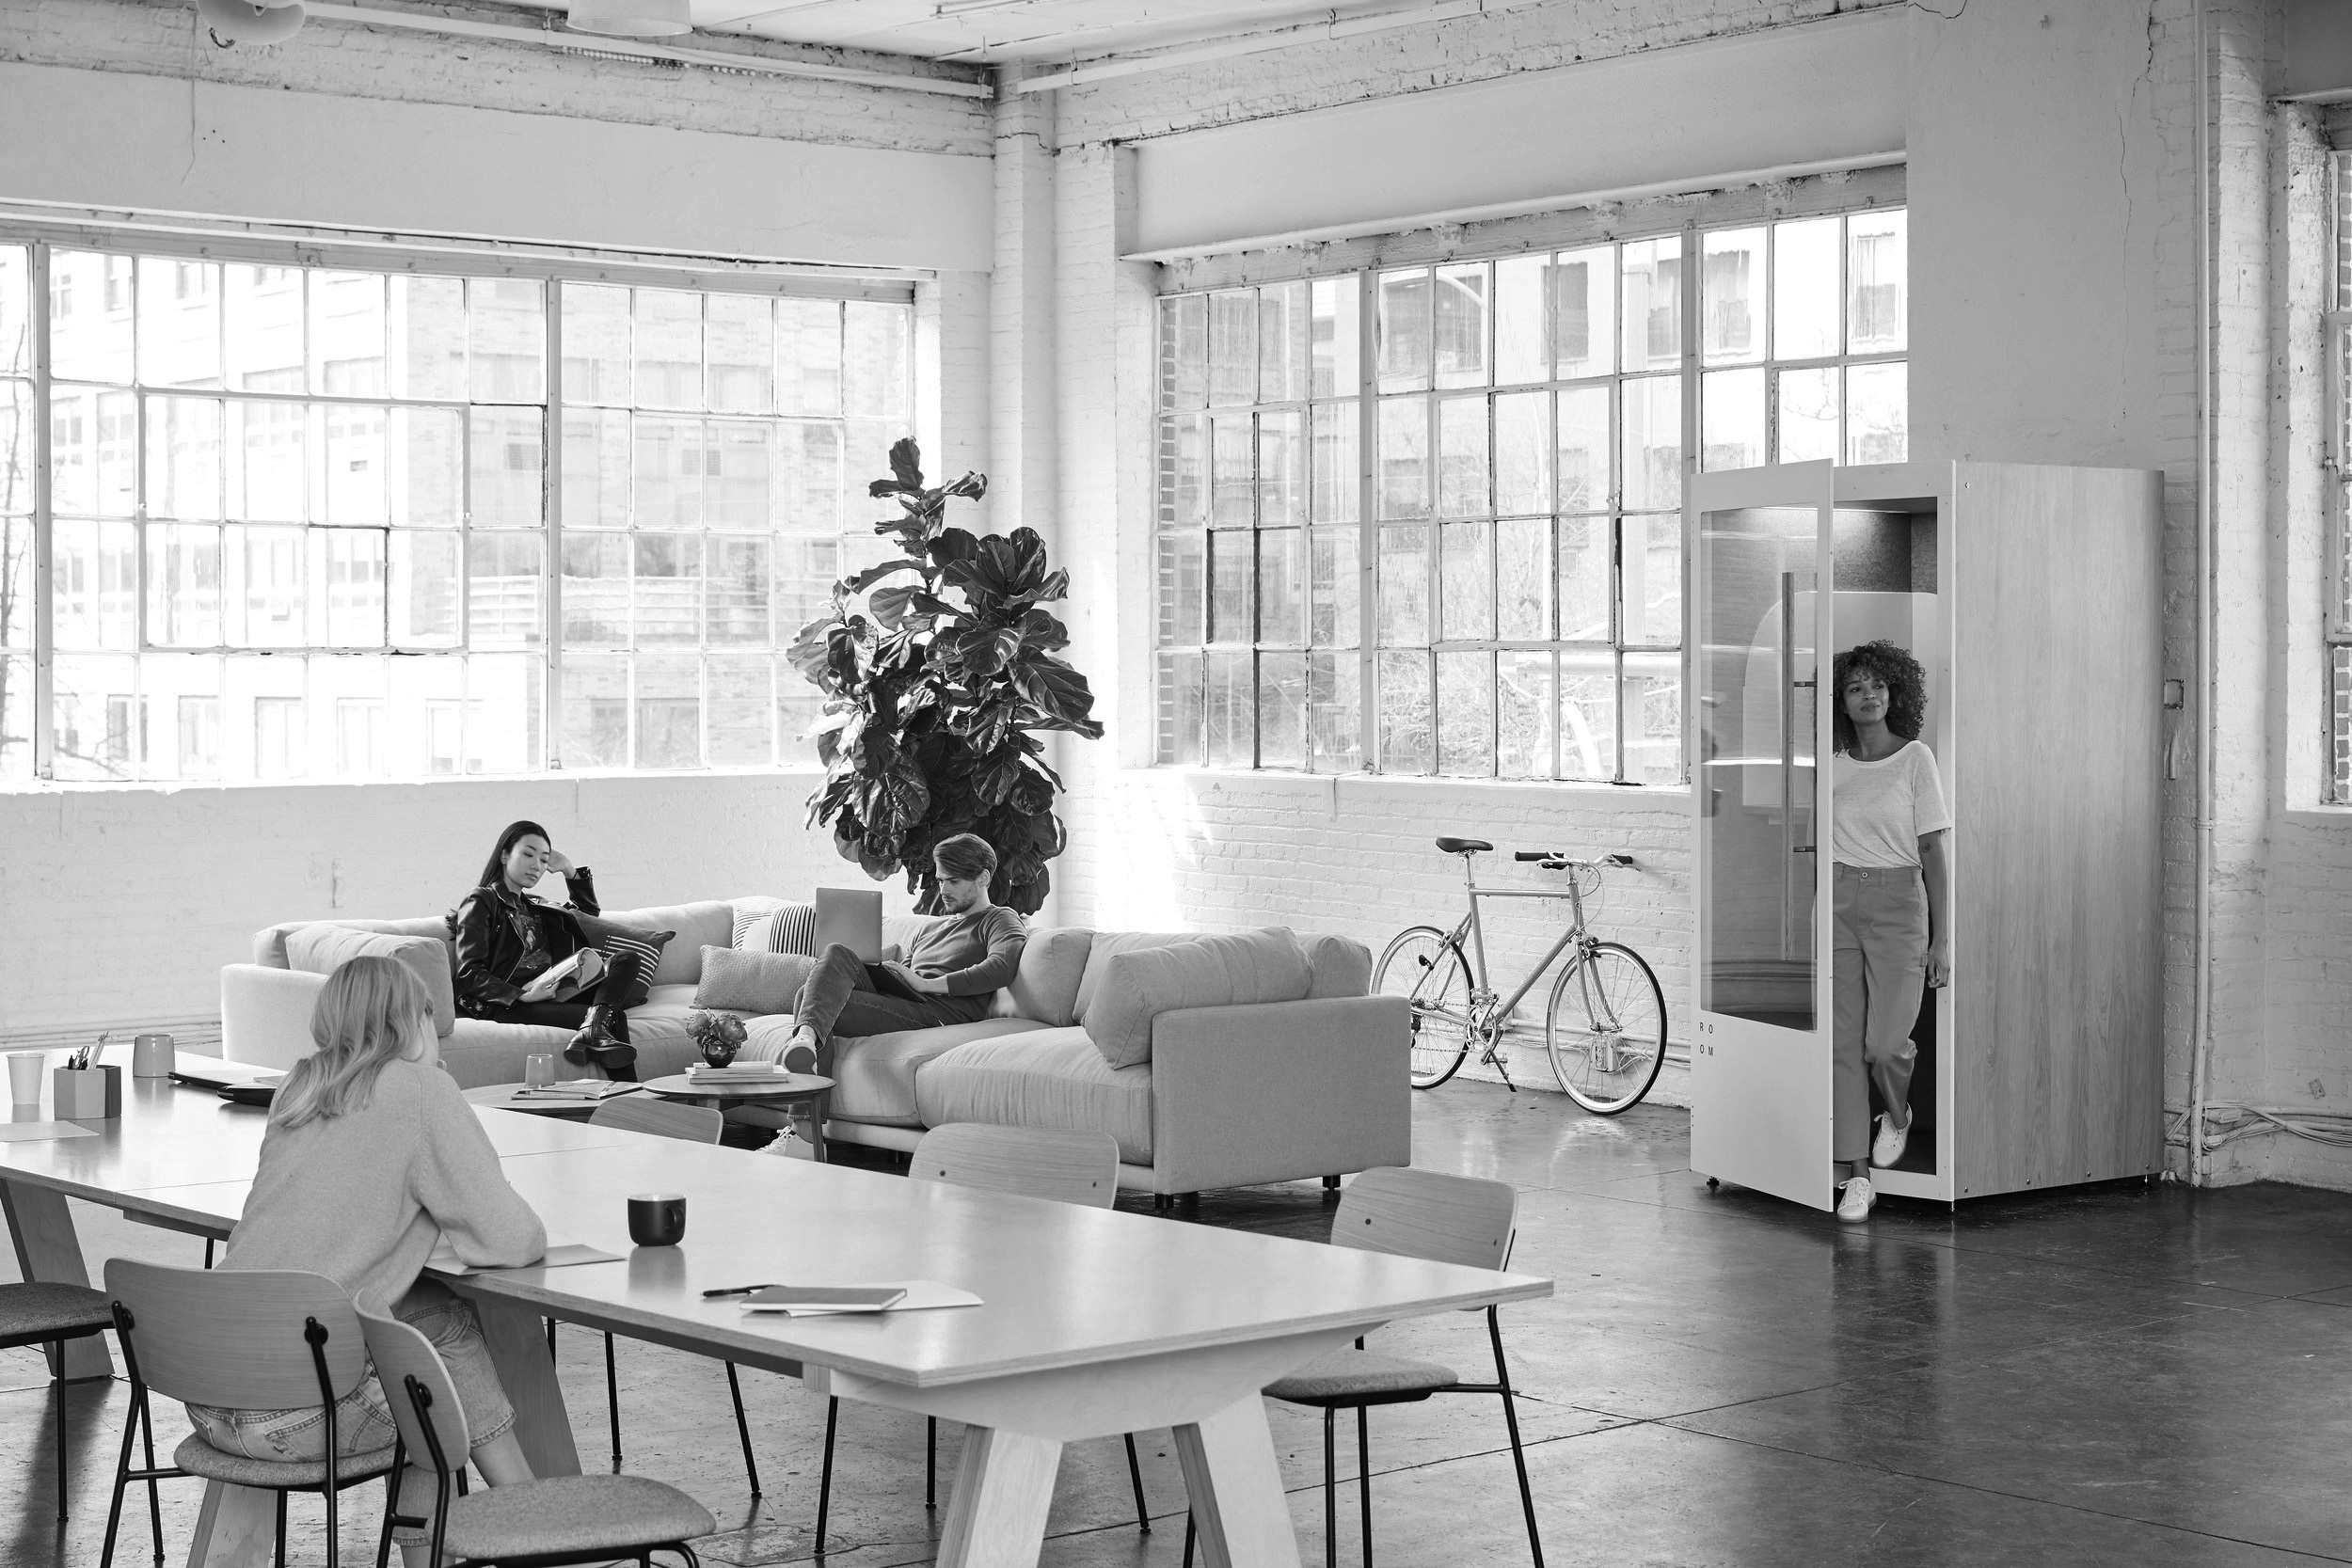 image of a loft room with four people interacting with the space